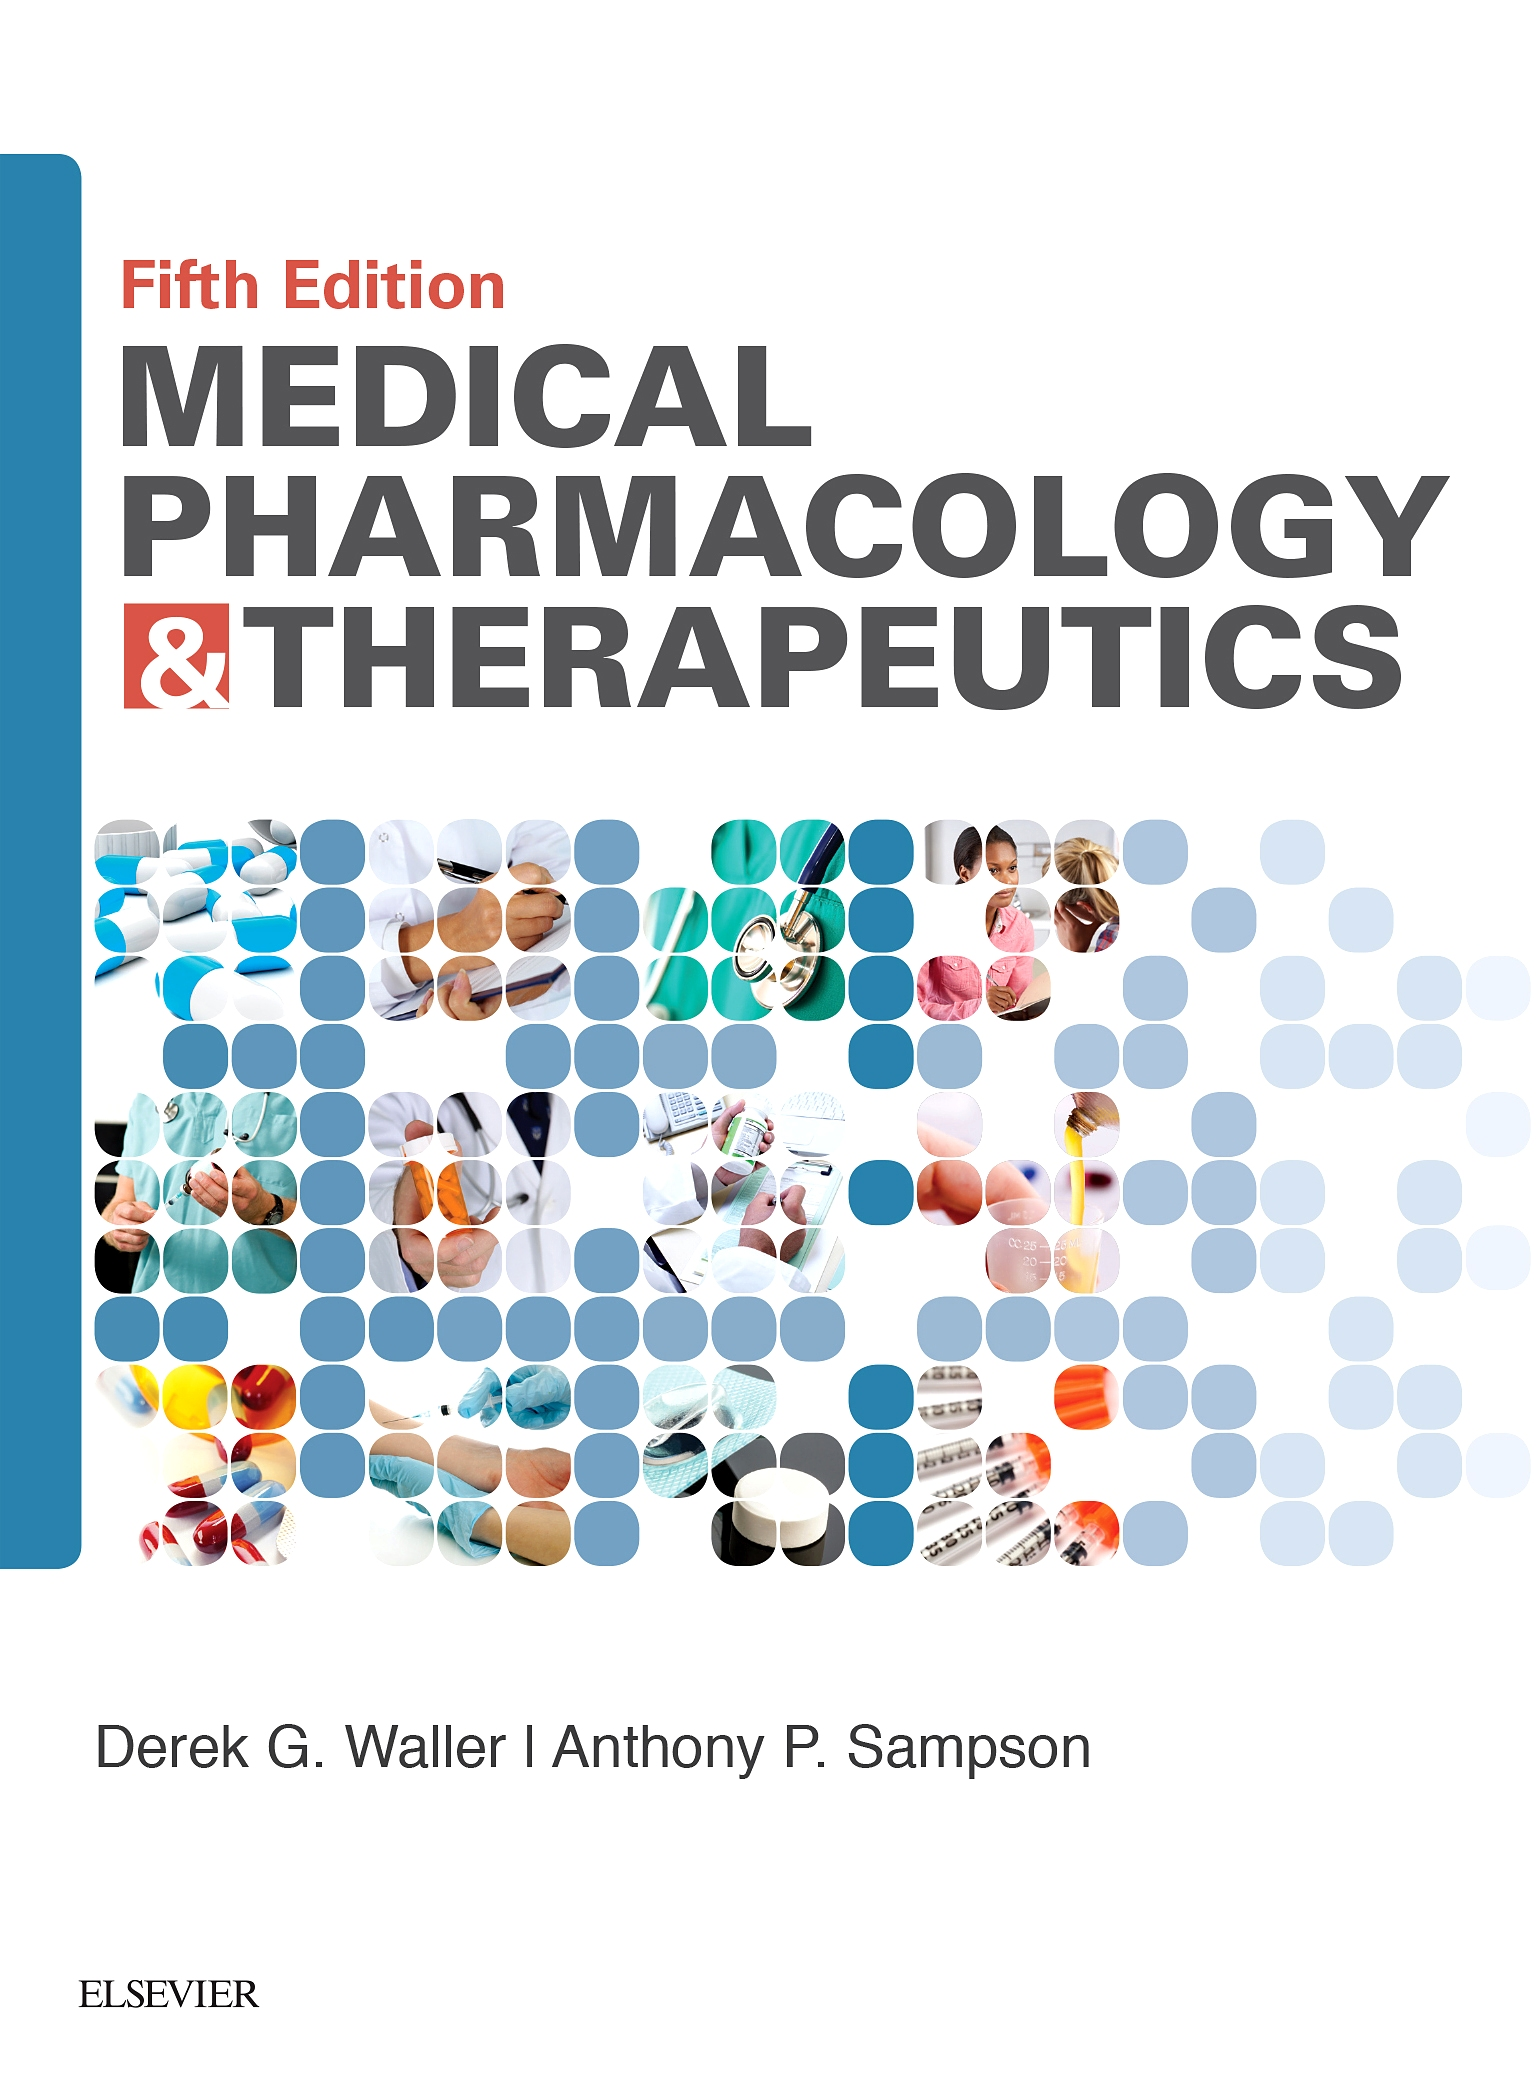 Evolve Resource for Medical Pharmacology & Therapeutics, 5th Edition